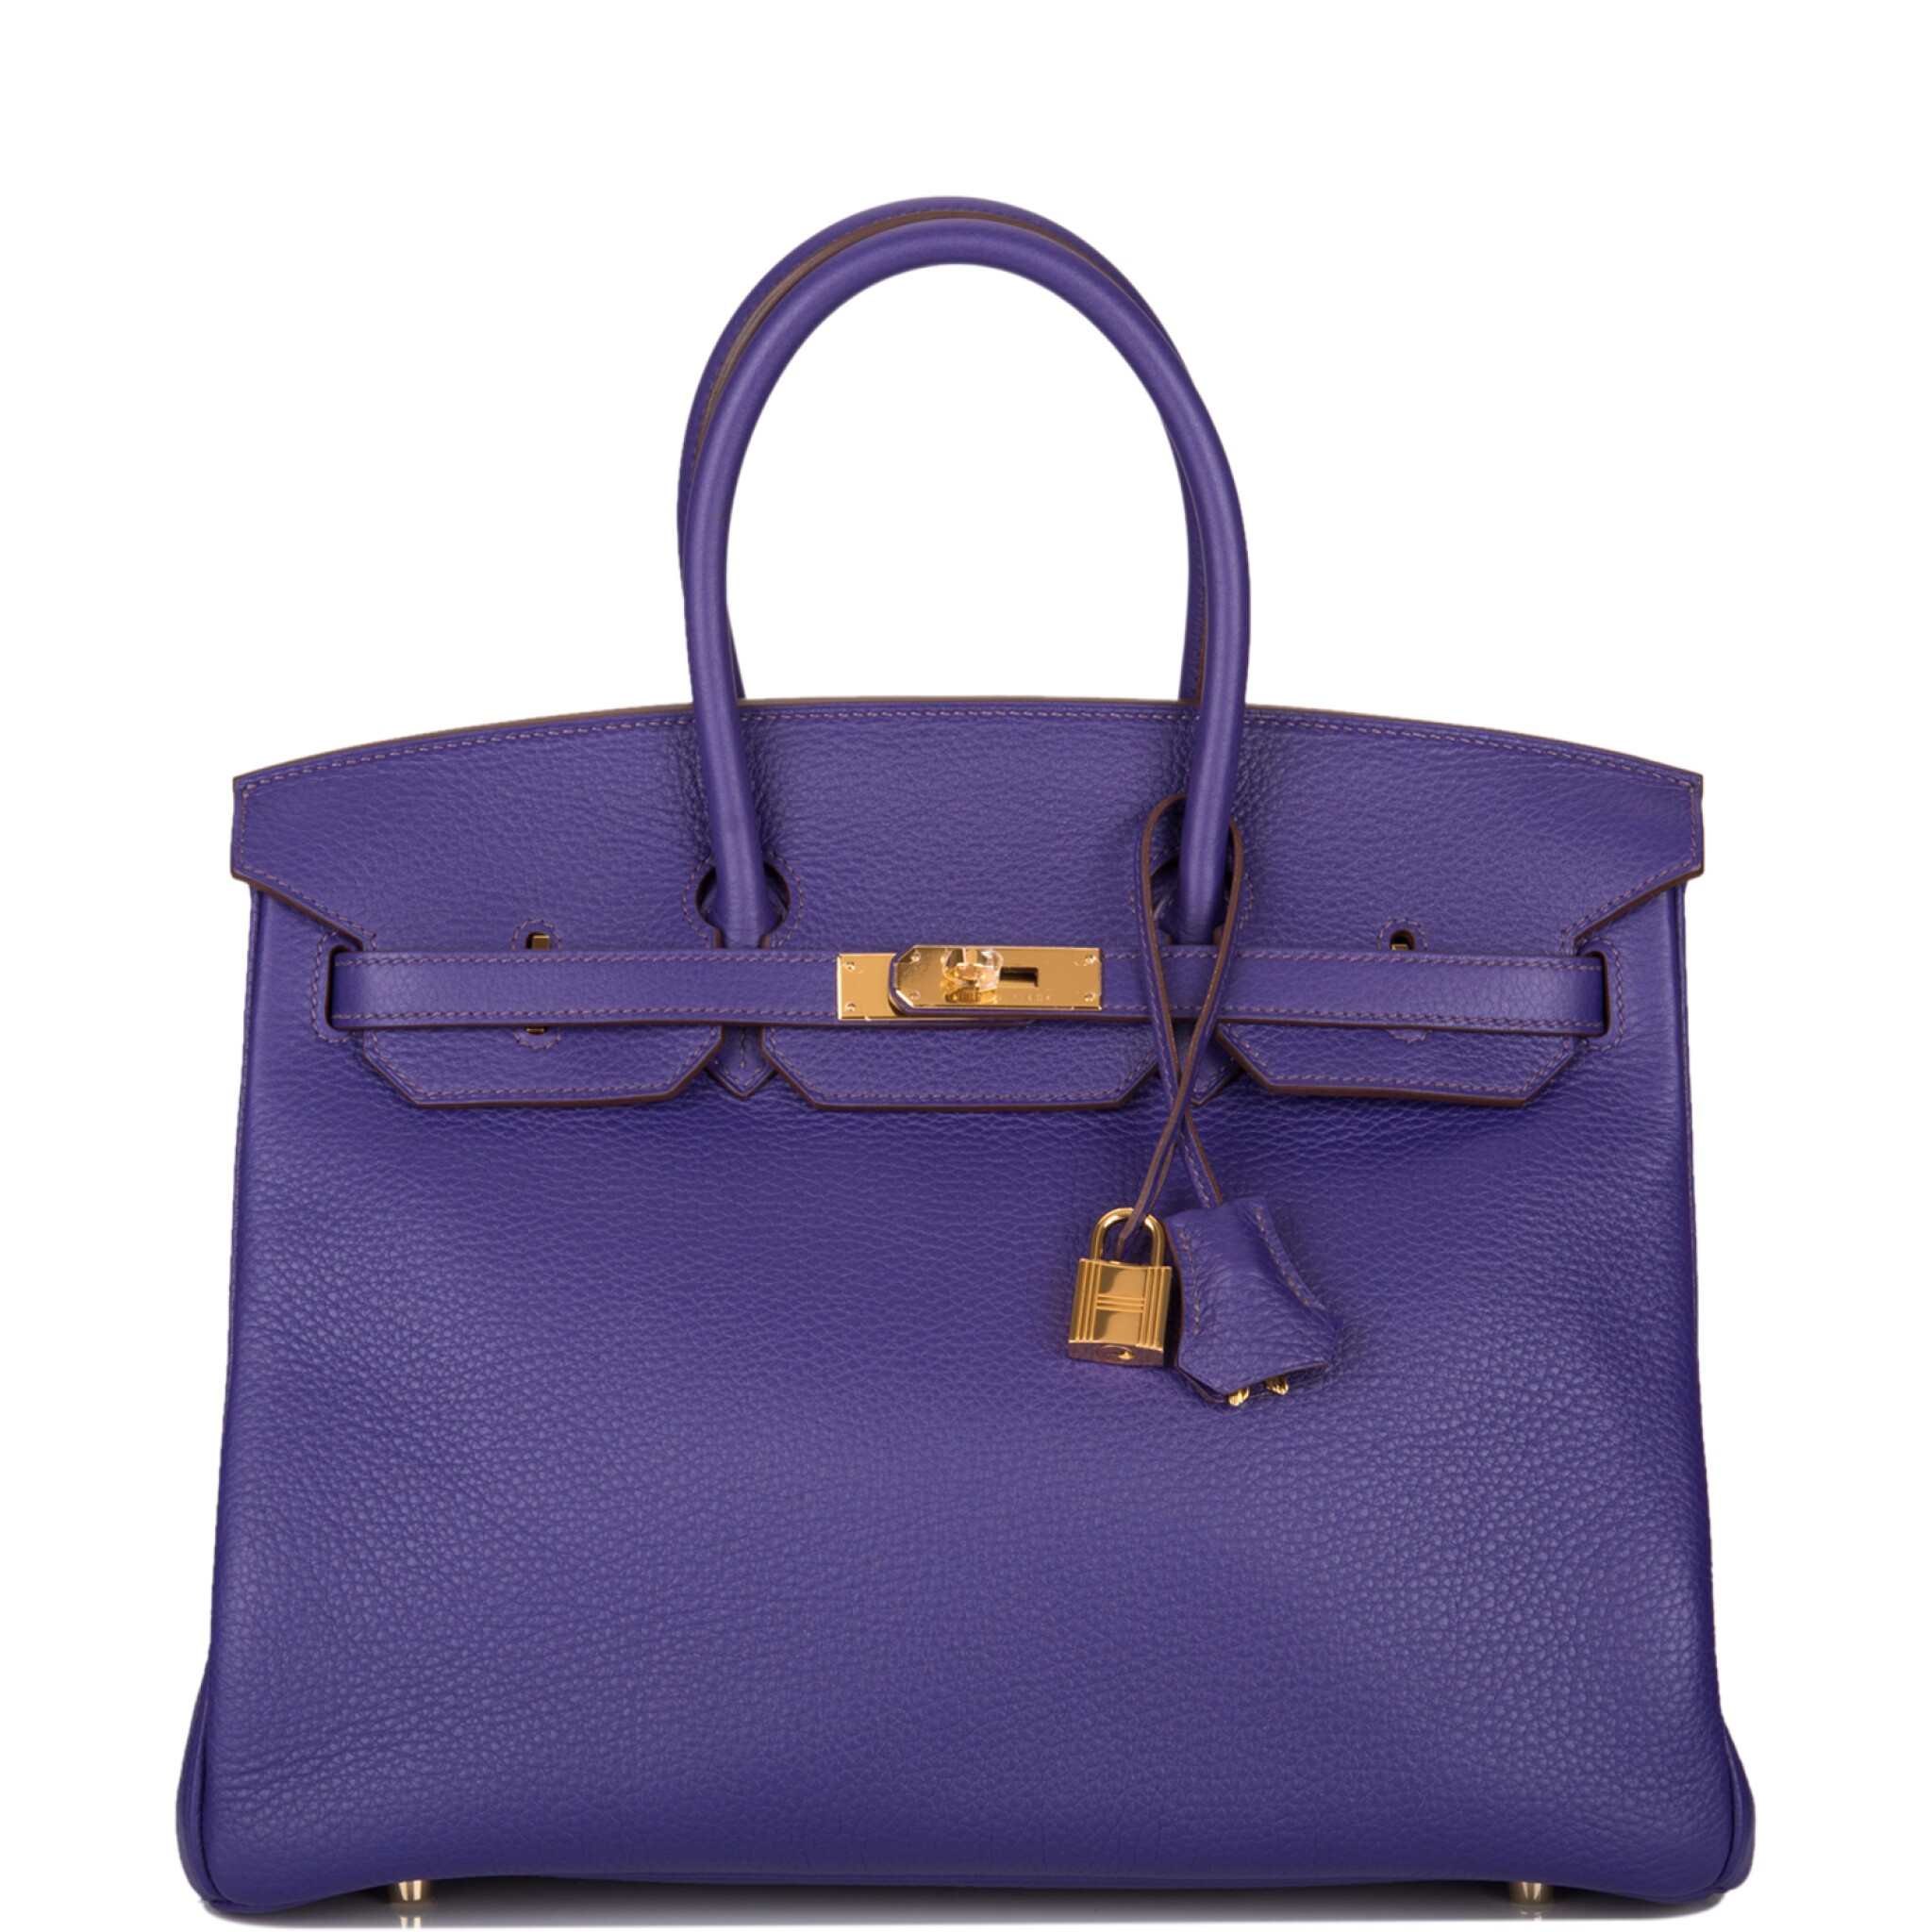 View full screen - View 1 of Lot 19. Hermès Iris Birkin 35cm of Togo Leather with Gold Hardware.